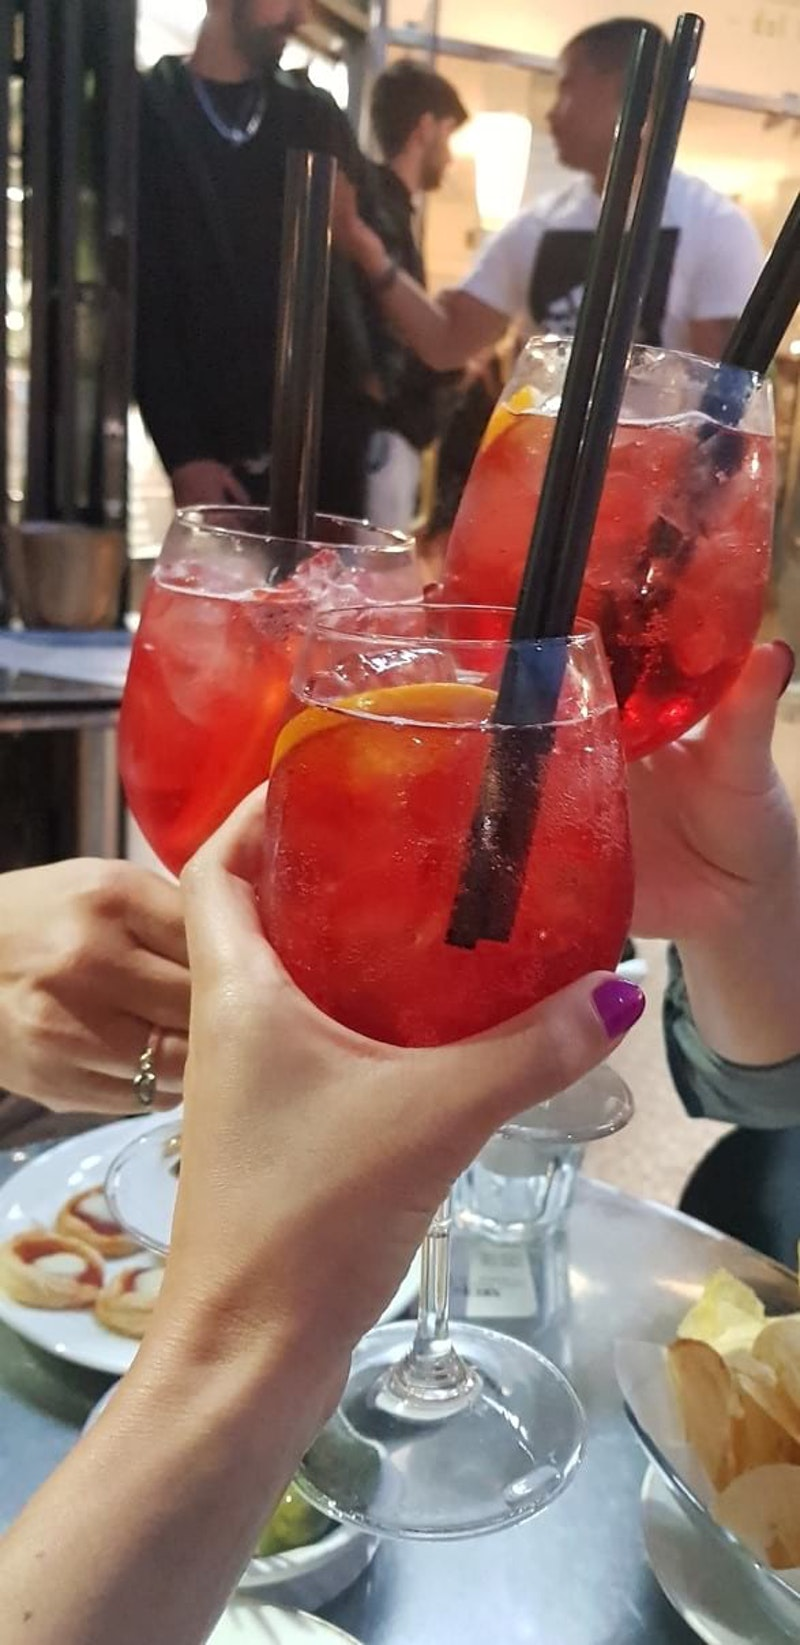 top-five-things-to-do-in-trastevere-rome-aperitivo-daytrip4u